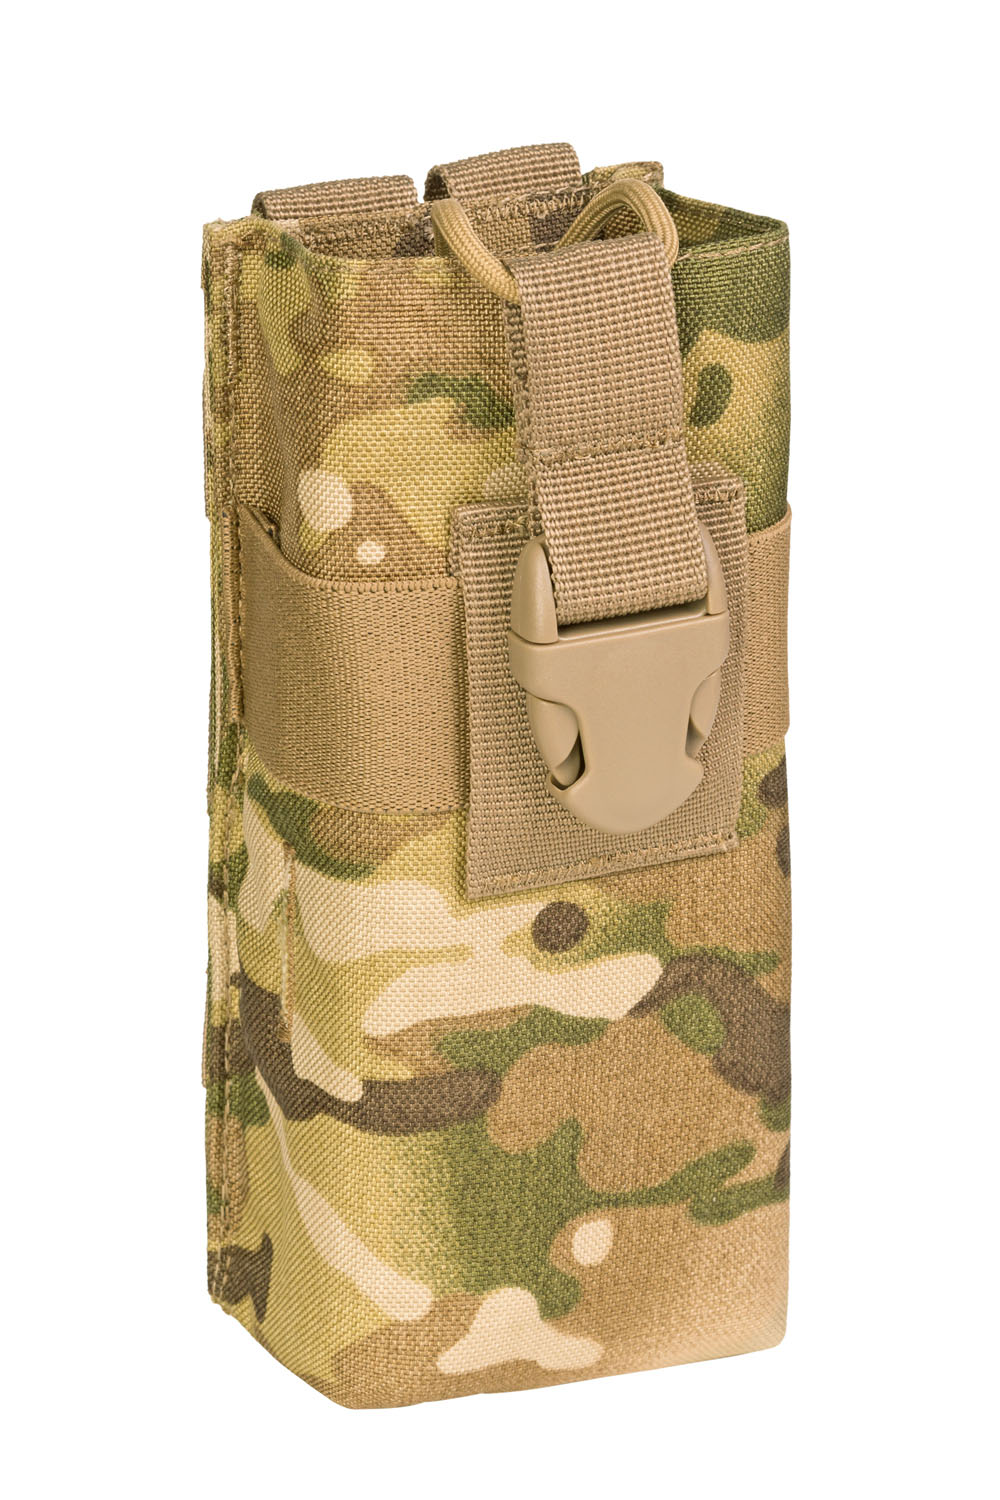 Large radio/MBITR pouch